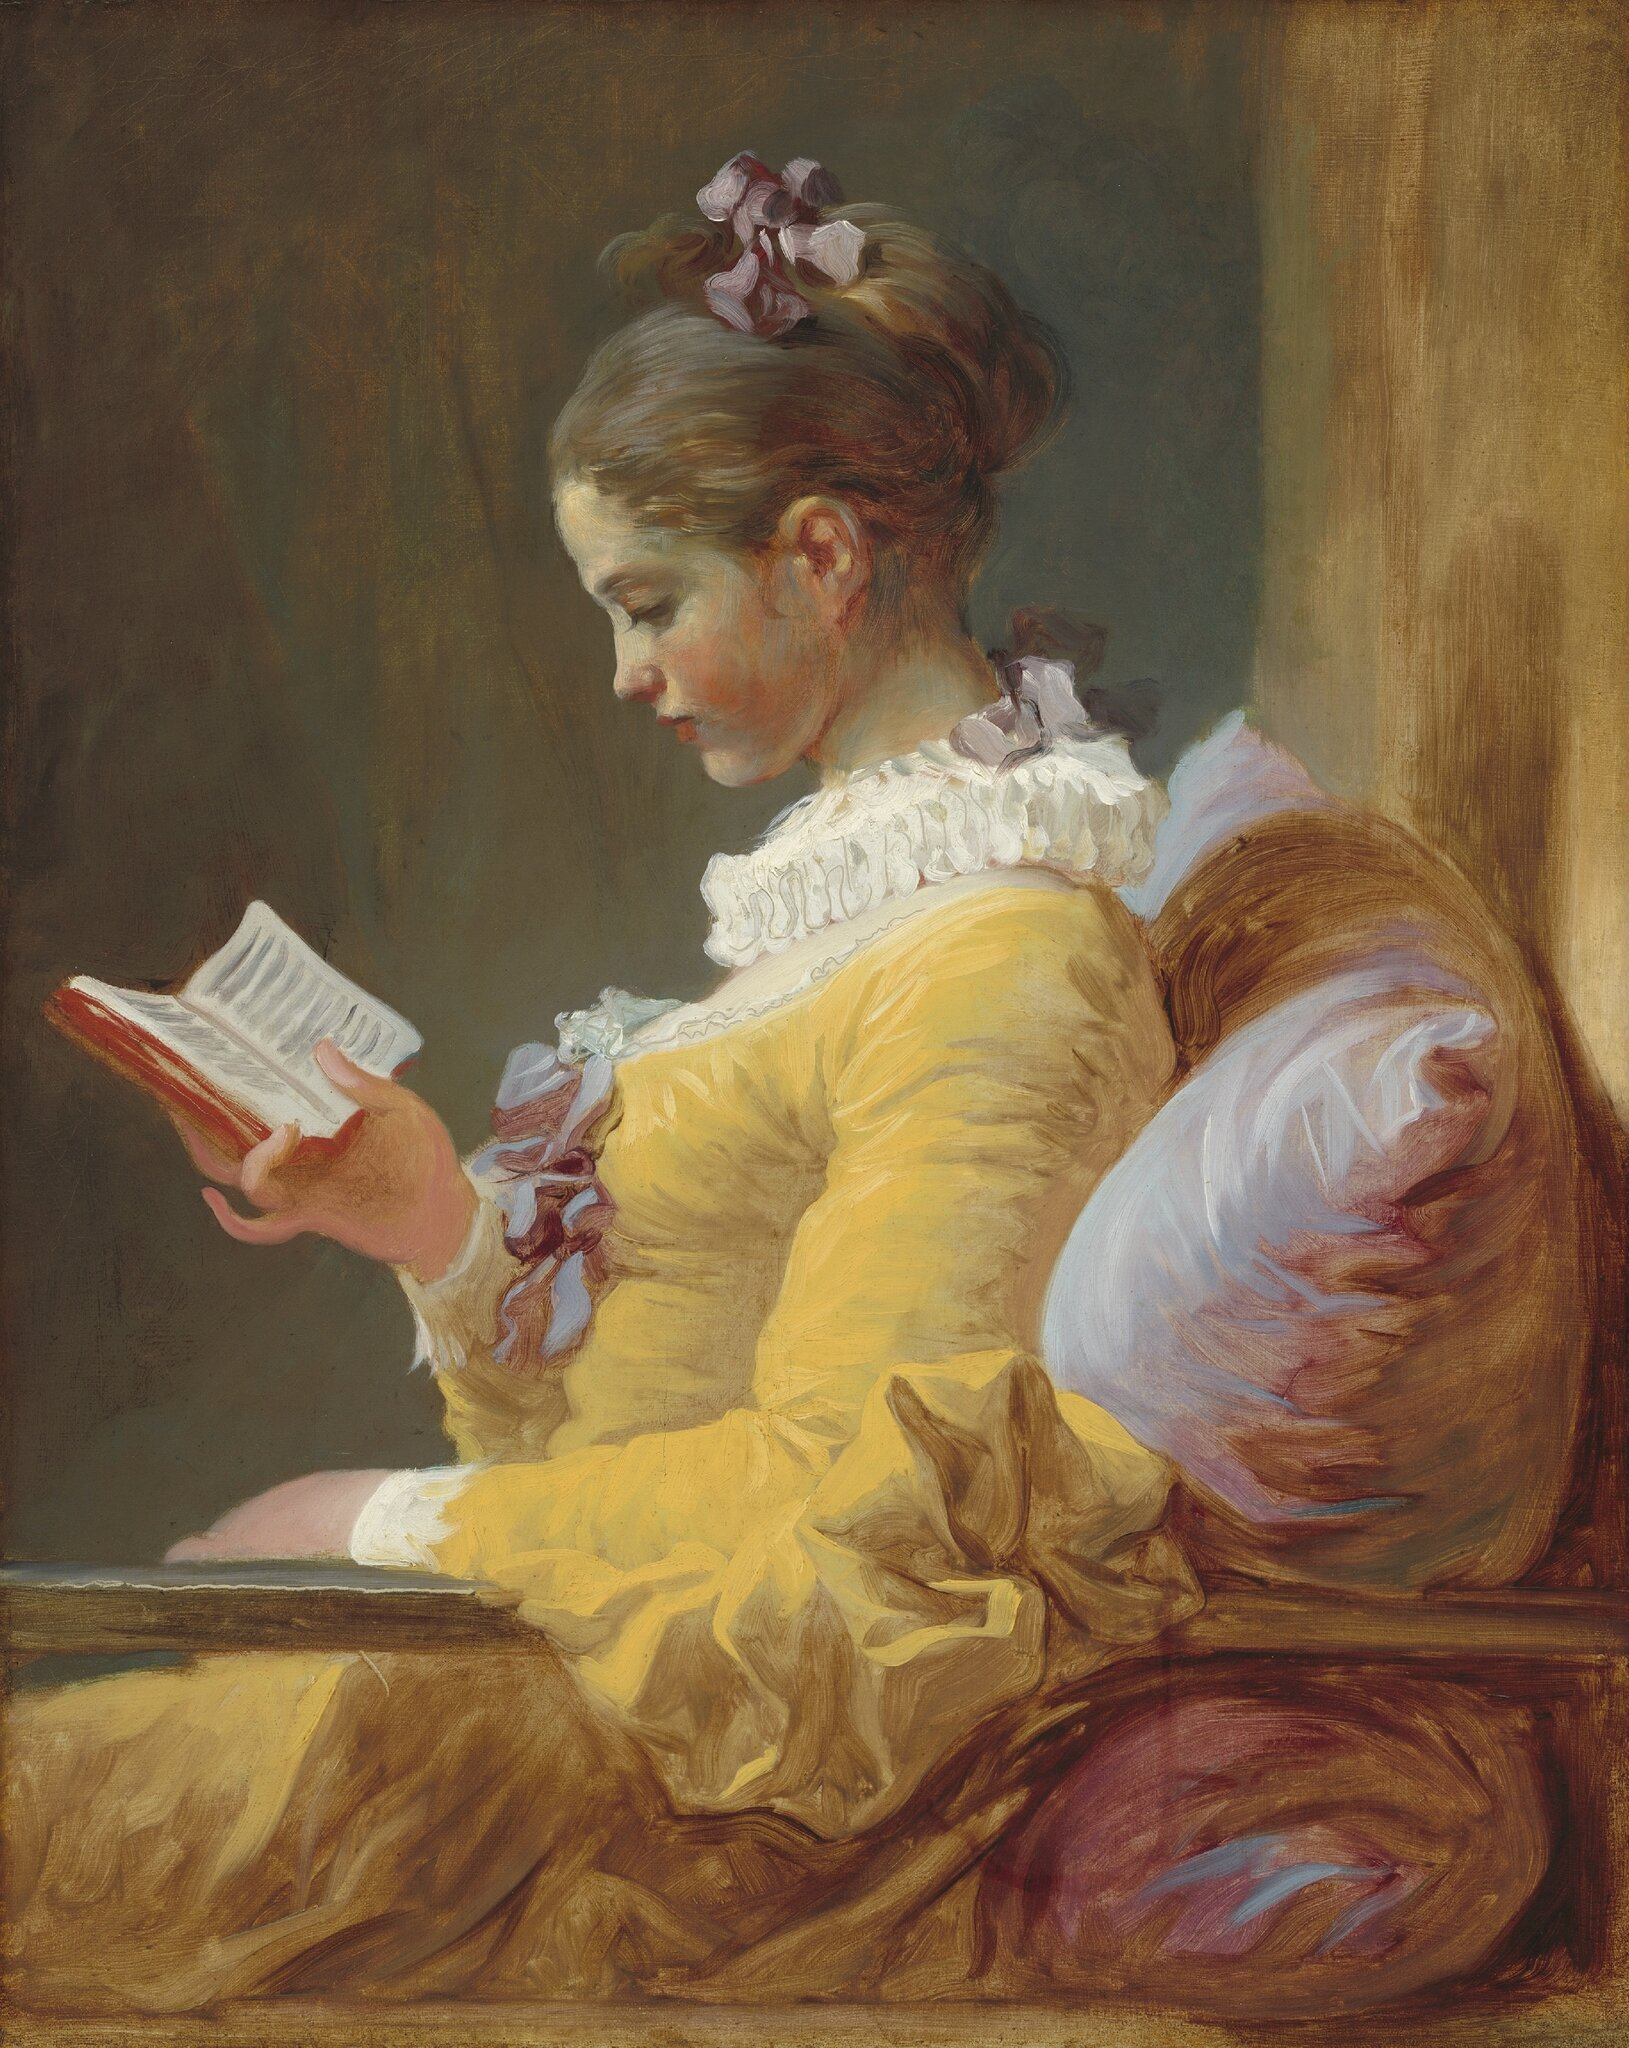 Jean Honoré Fragonard exhibition unites fantasy figures and newly discovered drawing